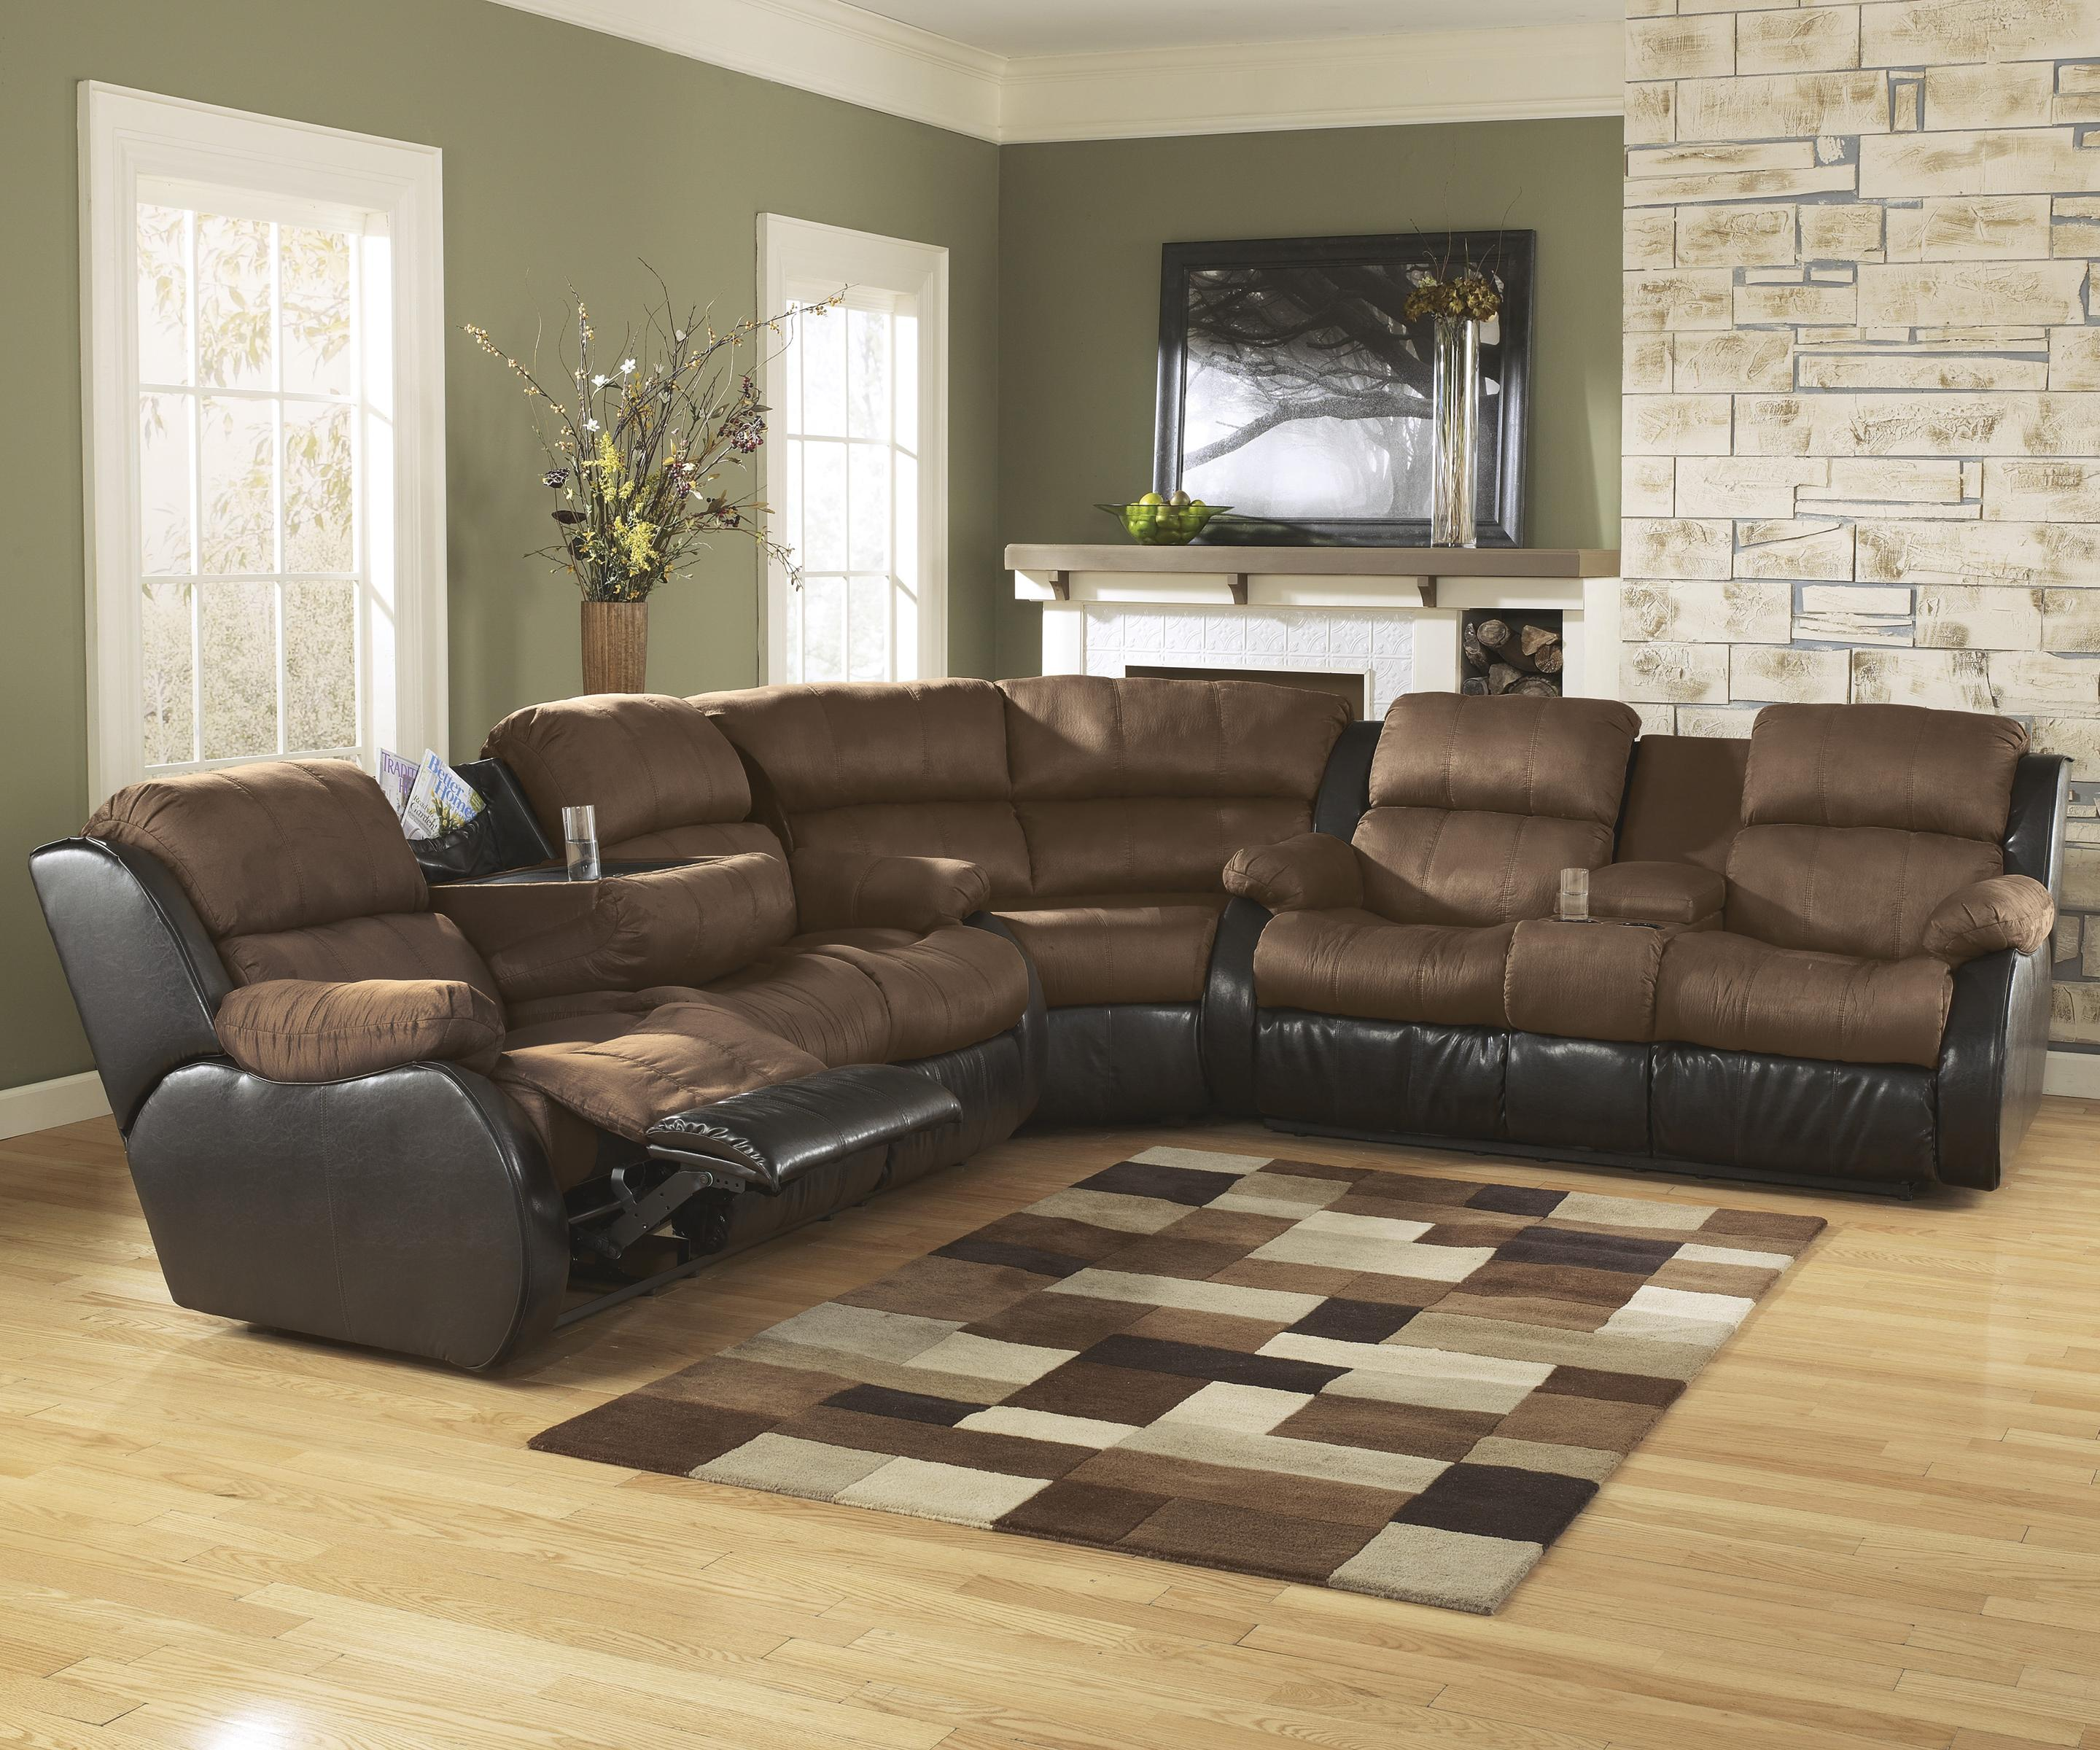 Signature Design By Ashley Presley Espresso Motion Sectional W